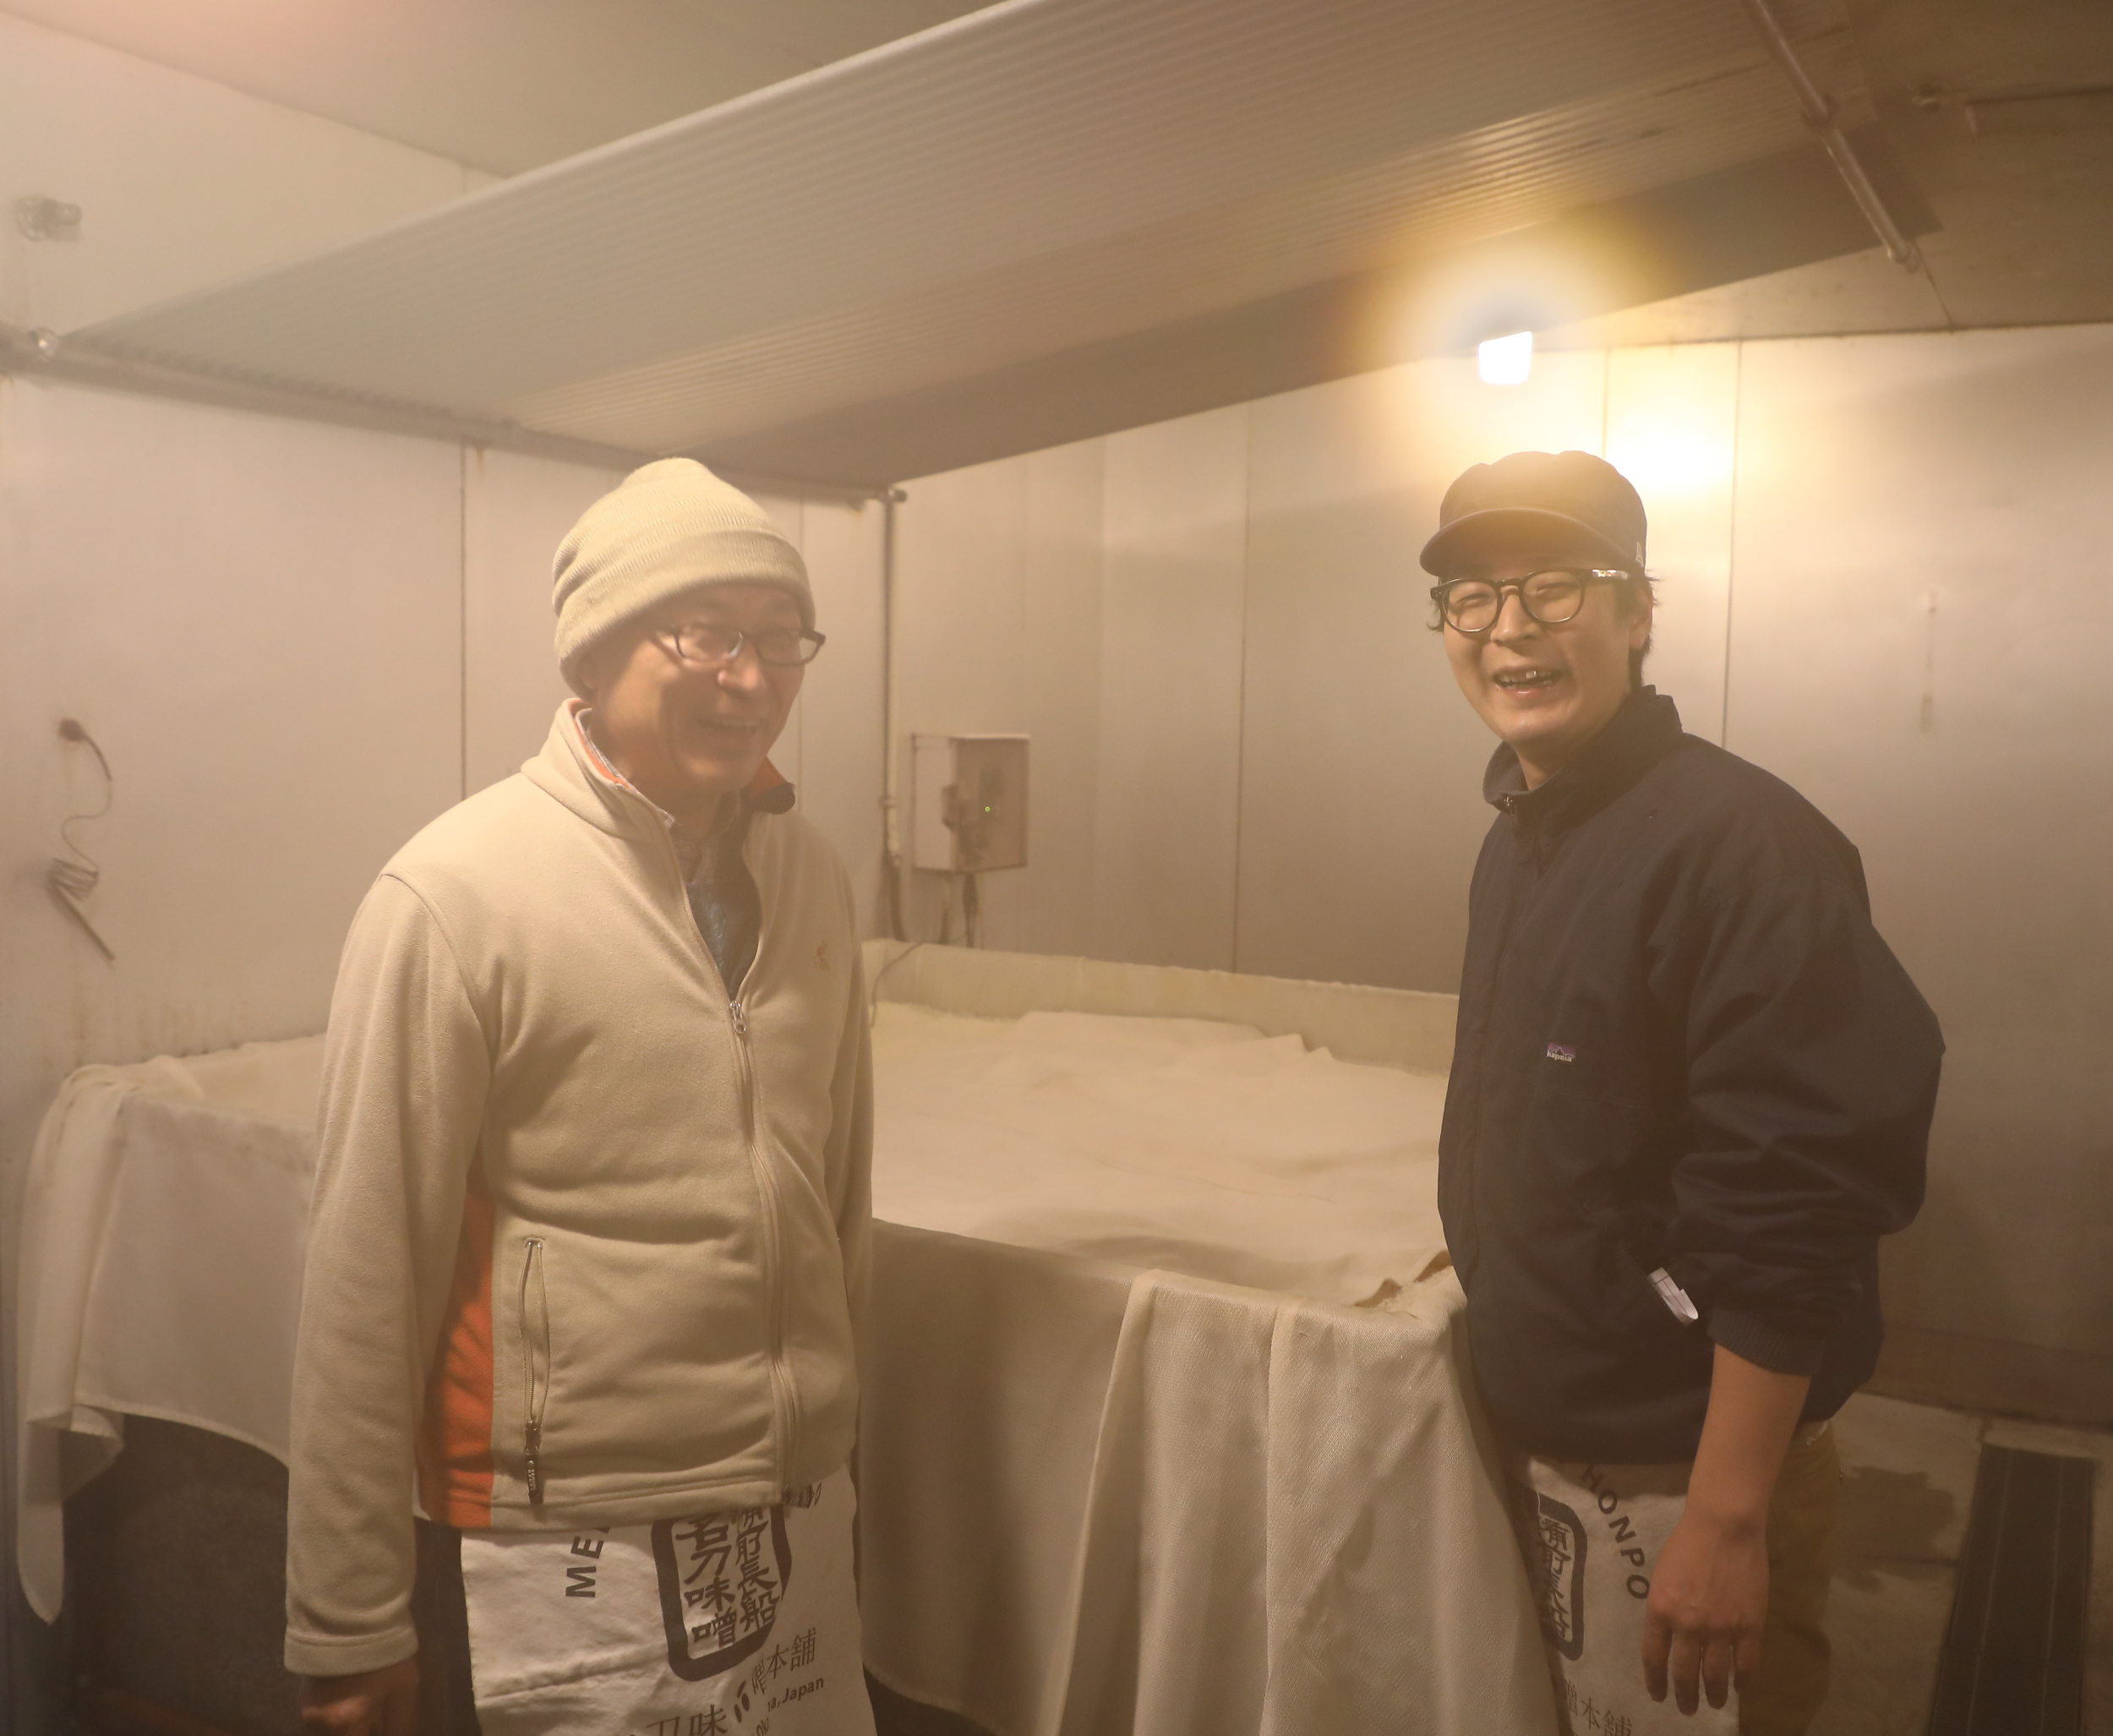 From right to left: Yohei Meitou with his father Noritaka Meitou in their sauna-like  muro  room during the first day of culturing a batch of white rice into koji.